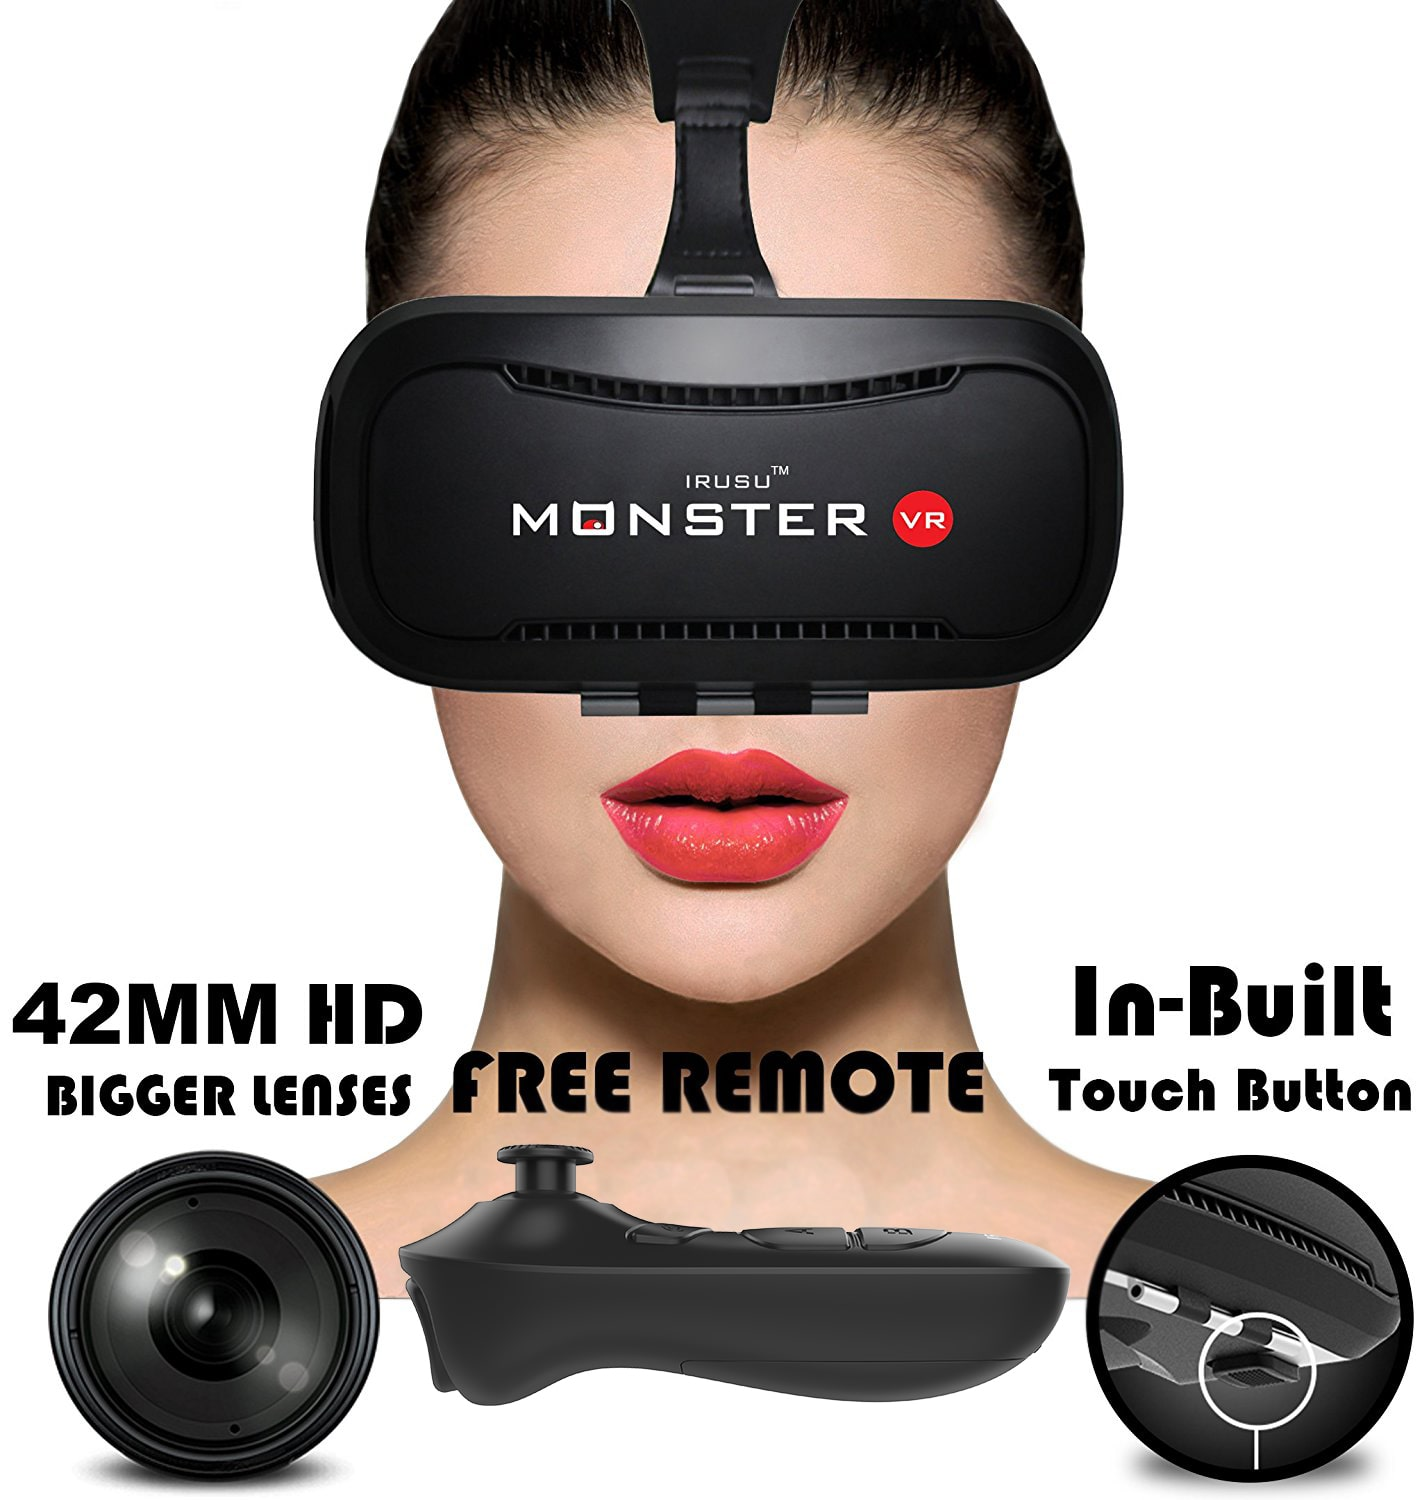 Irusu monster vr headset with free remote - virtual reality vr headset...